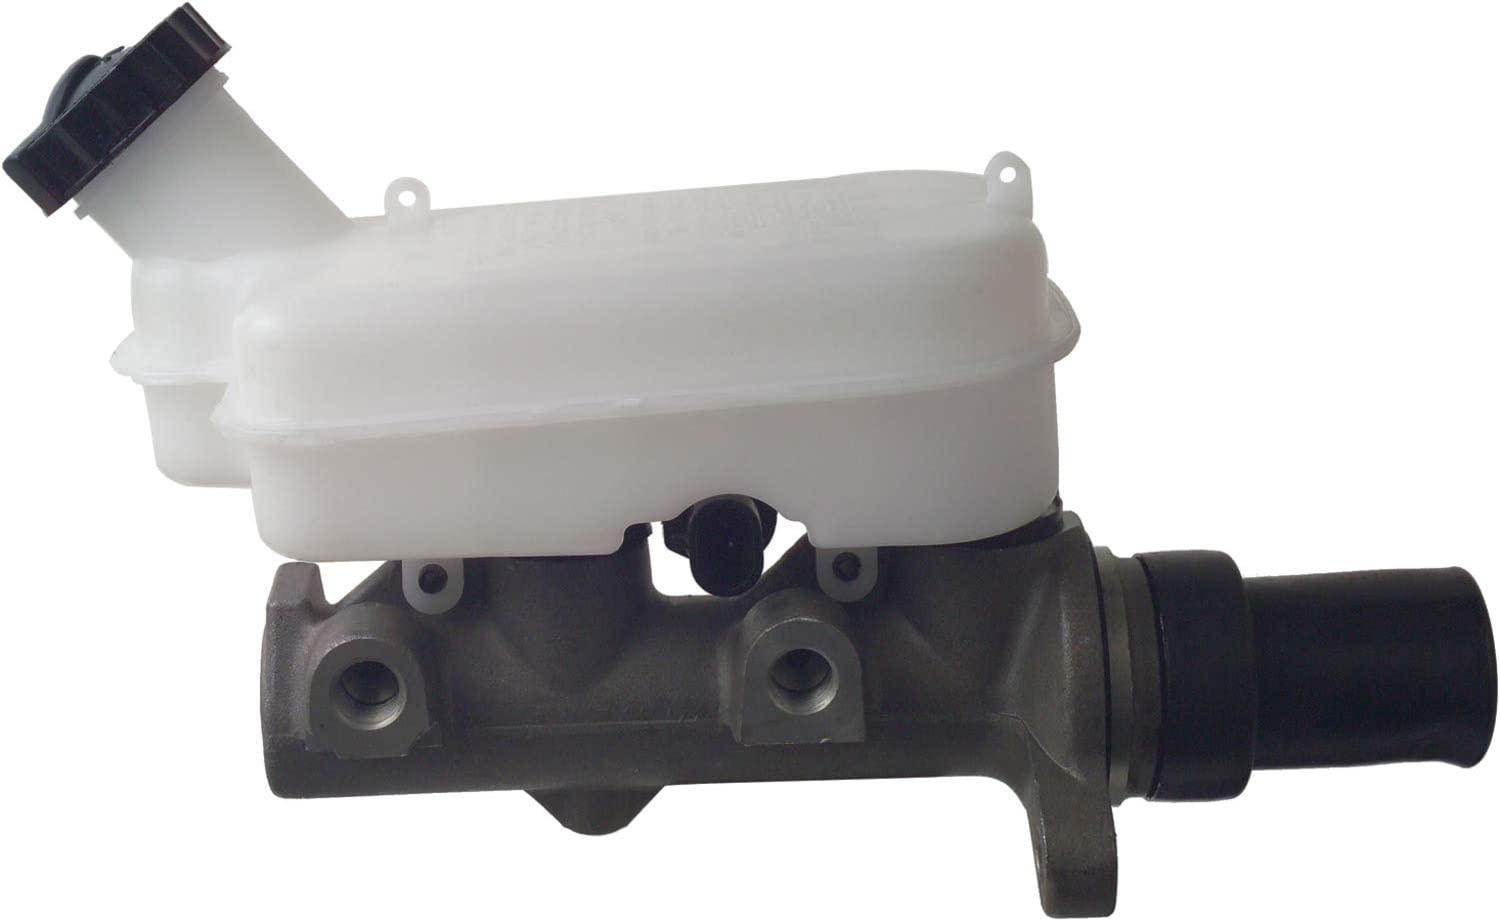 Shipping included Cardone 13-2973 New Max 84% OFF Brake Master Cylinder